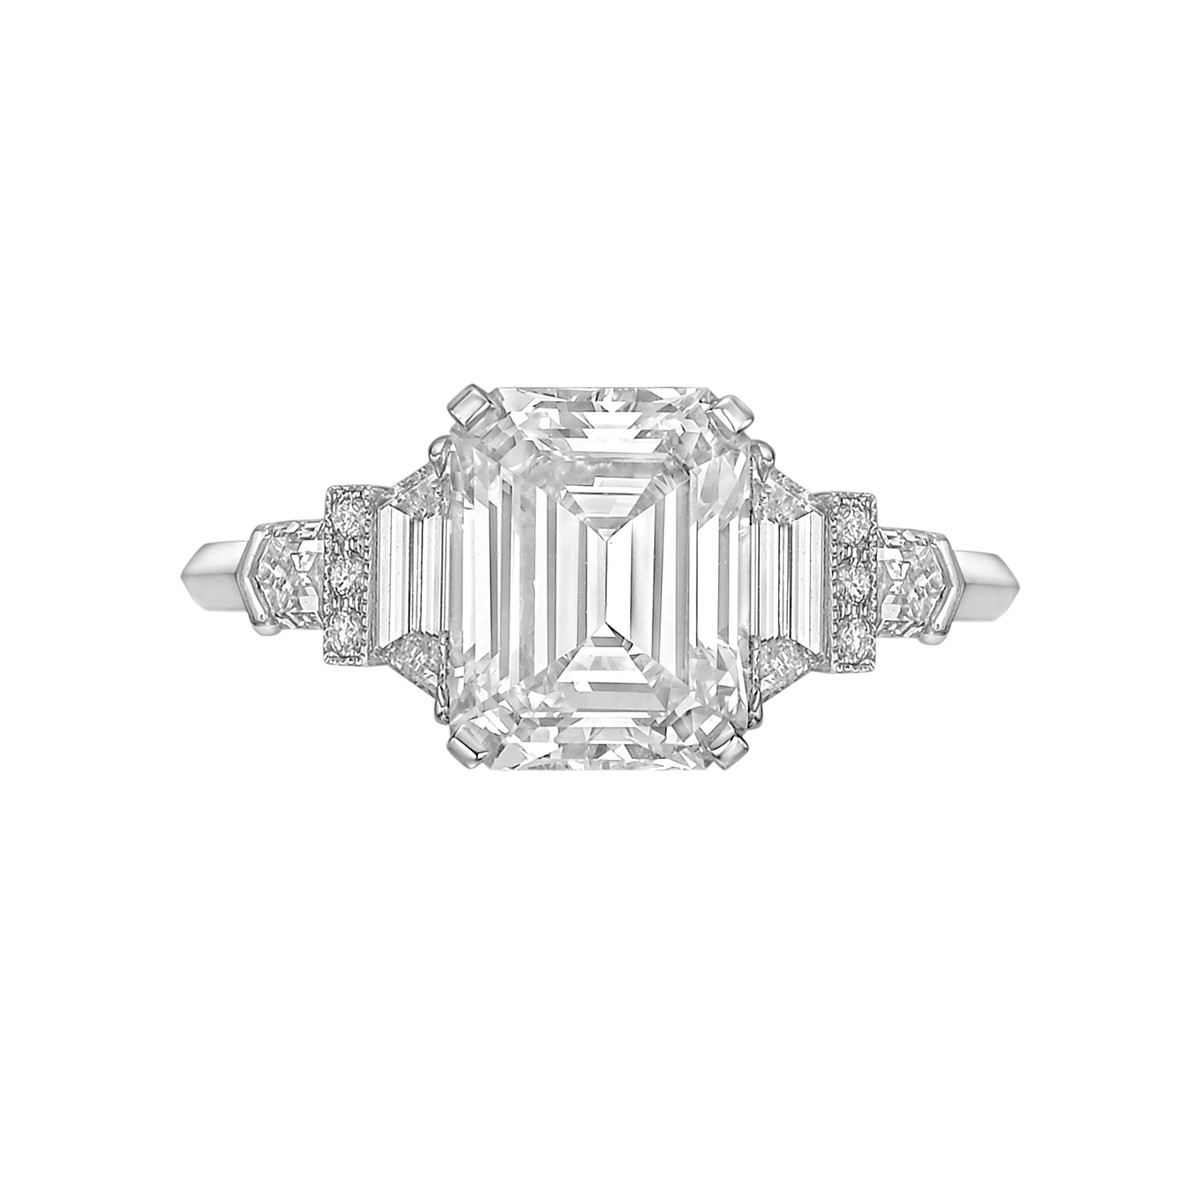 3.11ct Fine Colorless Emerald-Cut Diamond Ring